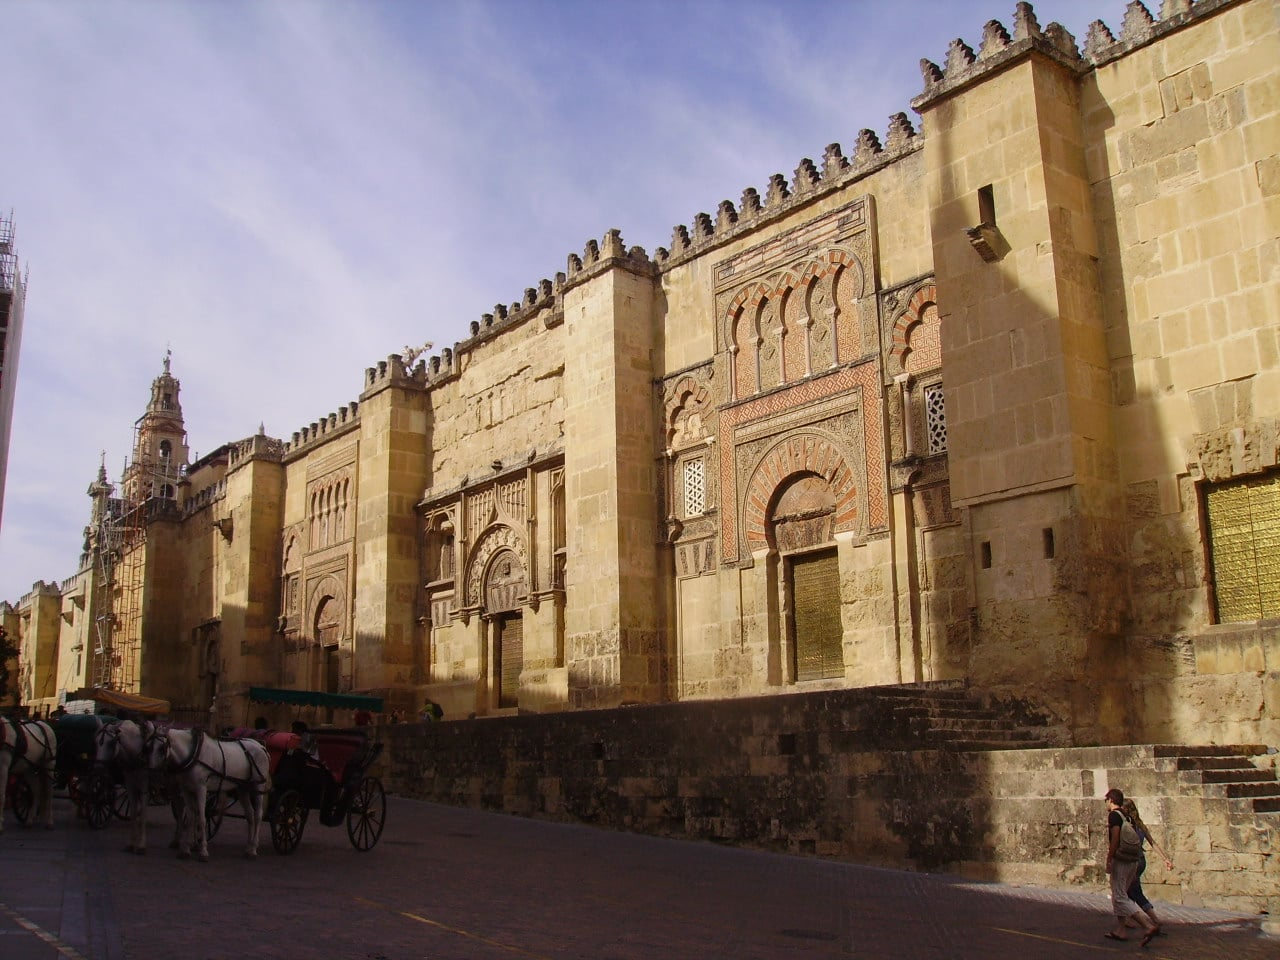 Get to know 4 good reasons to go to Cordoba already! - Wandering Life